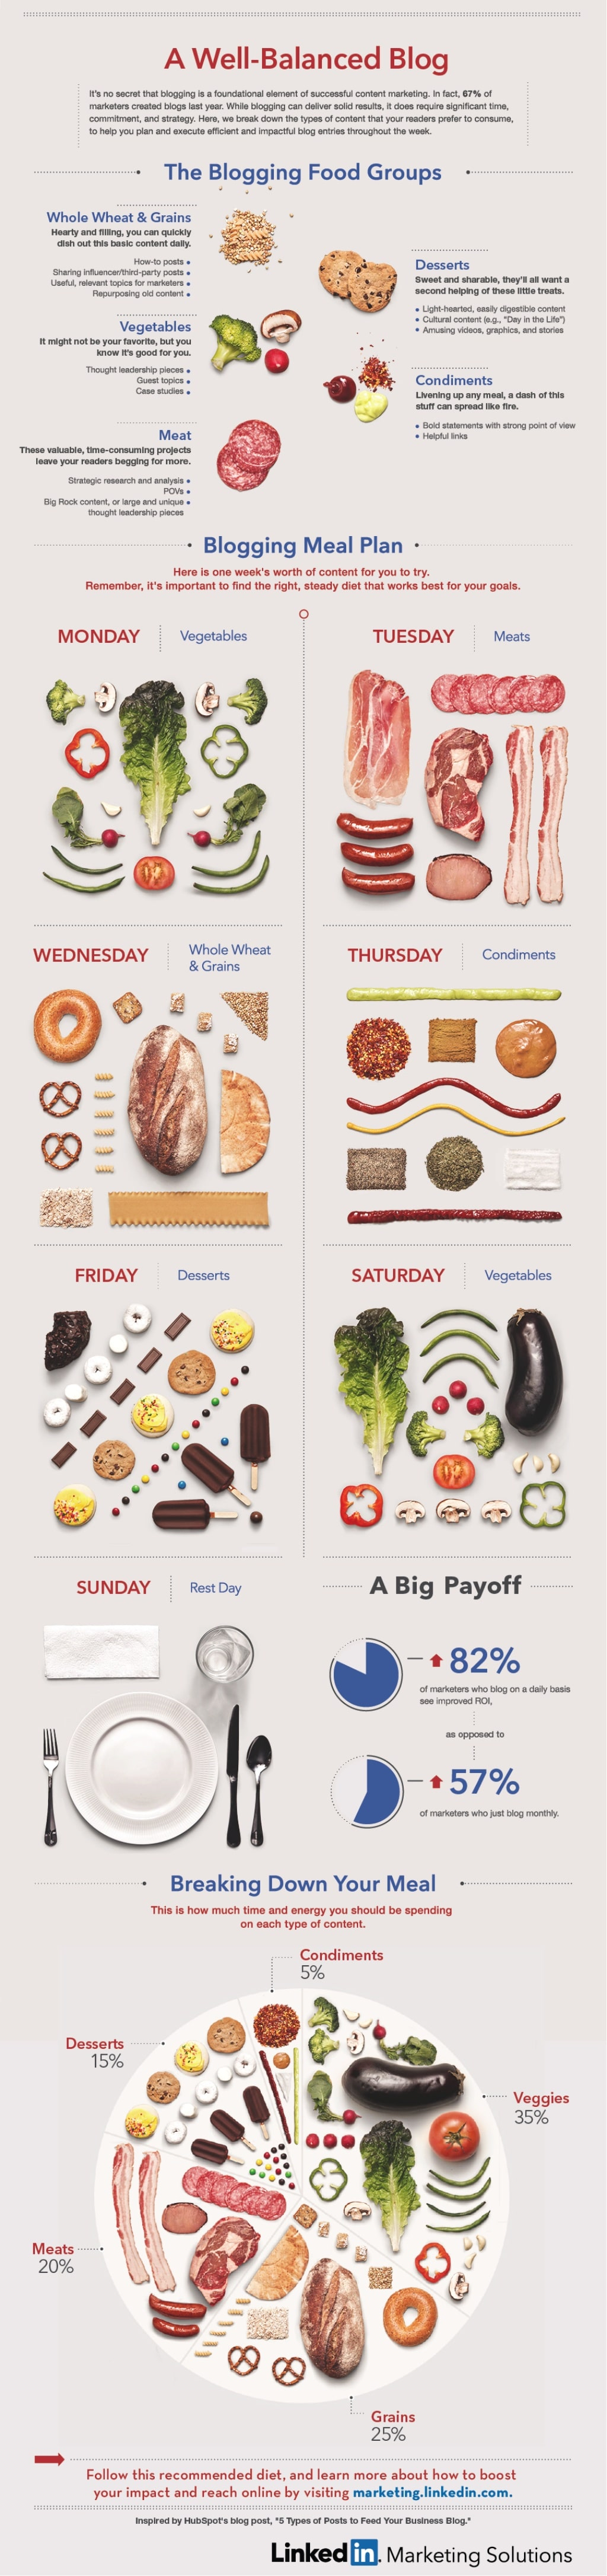 the-blogging-food-groups-a-wellbalanced-diet-of-content-infographic-1-1024